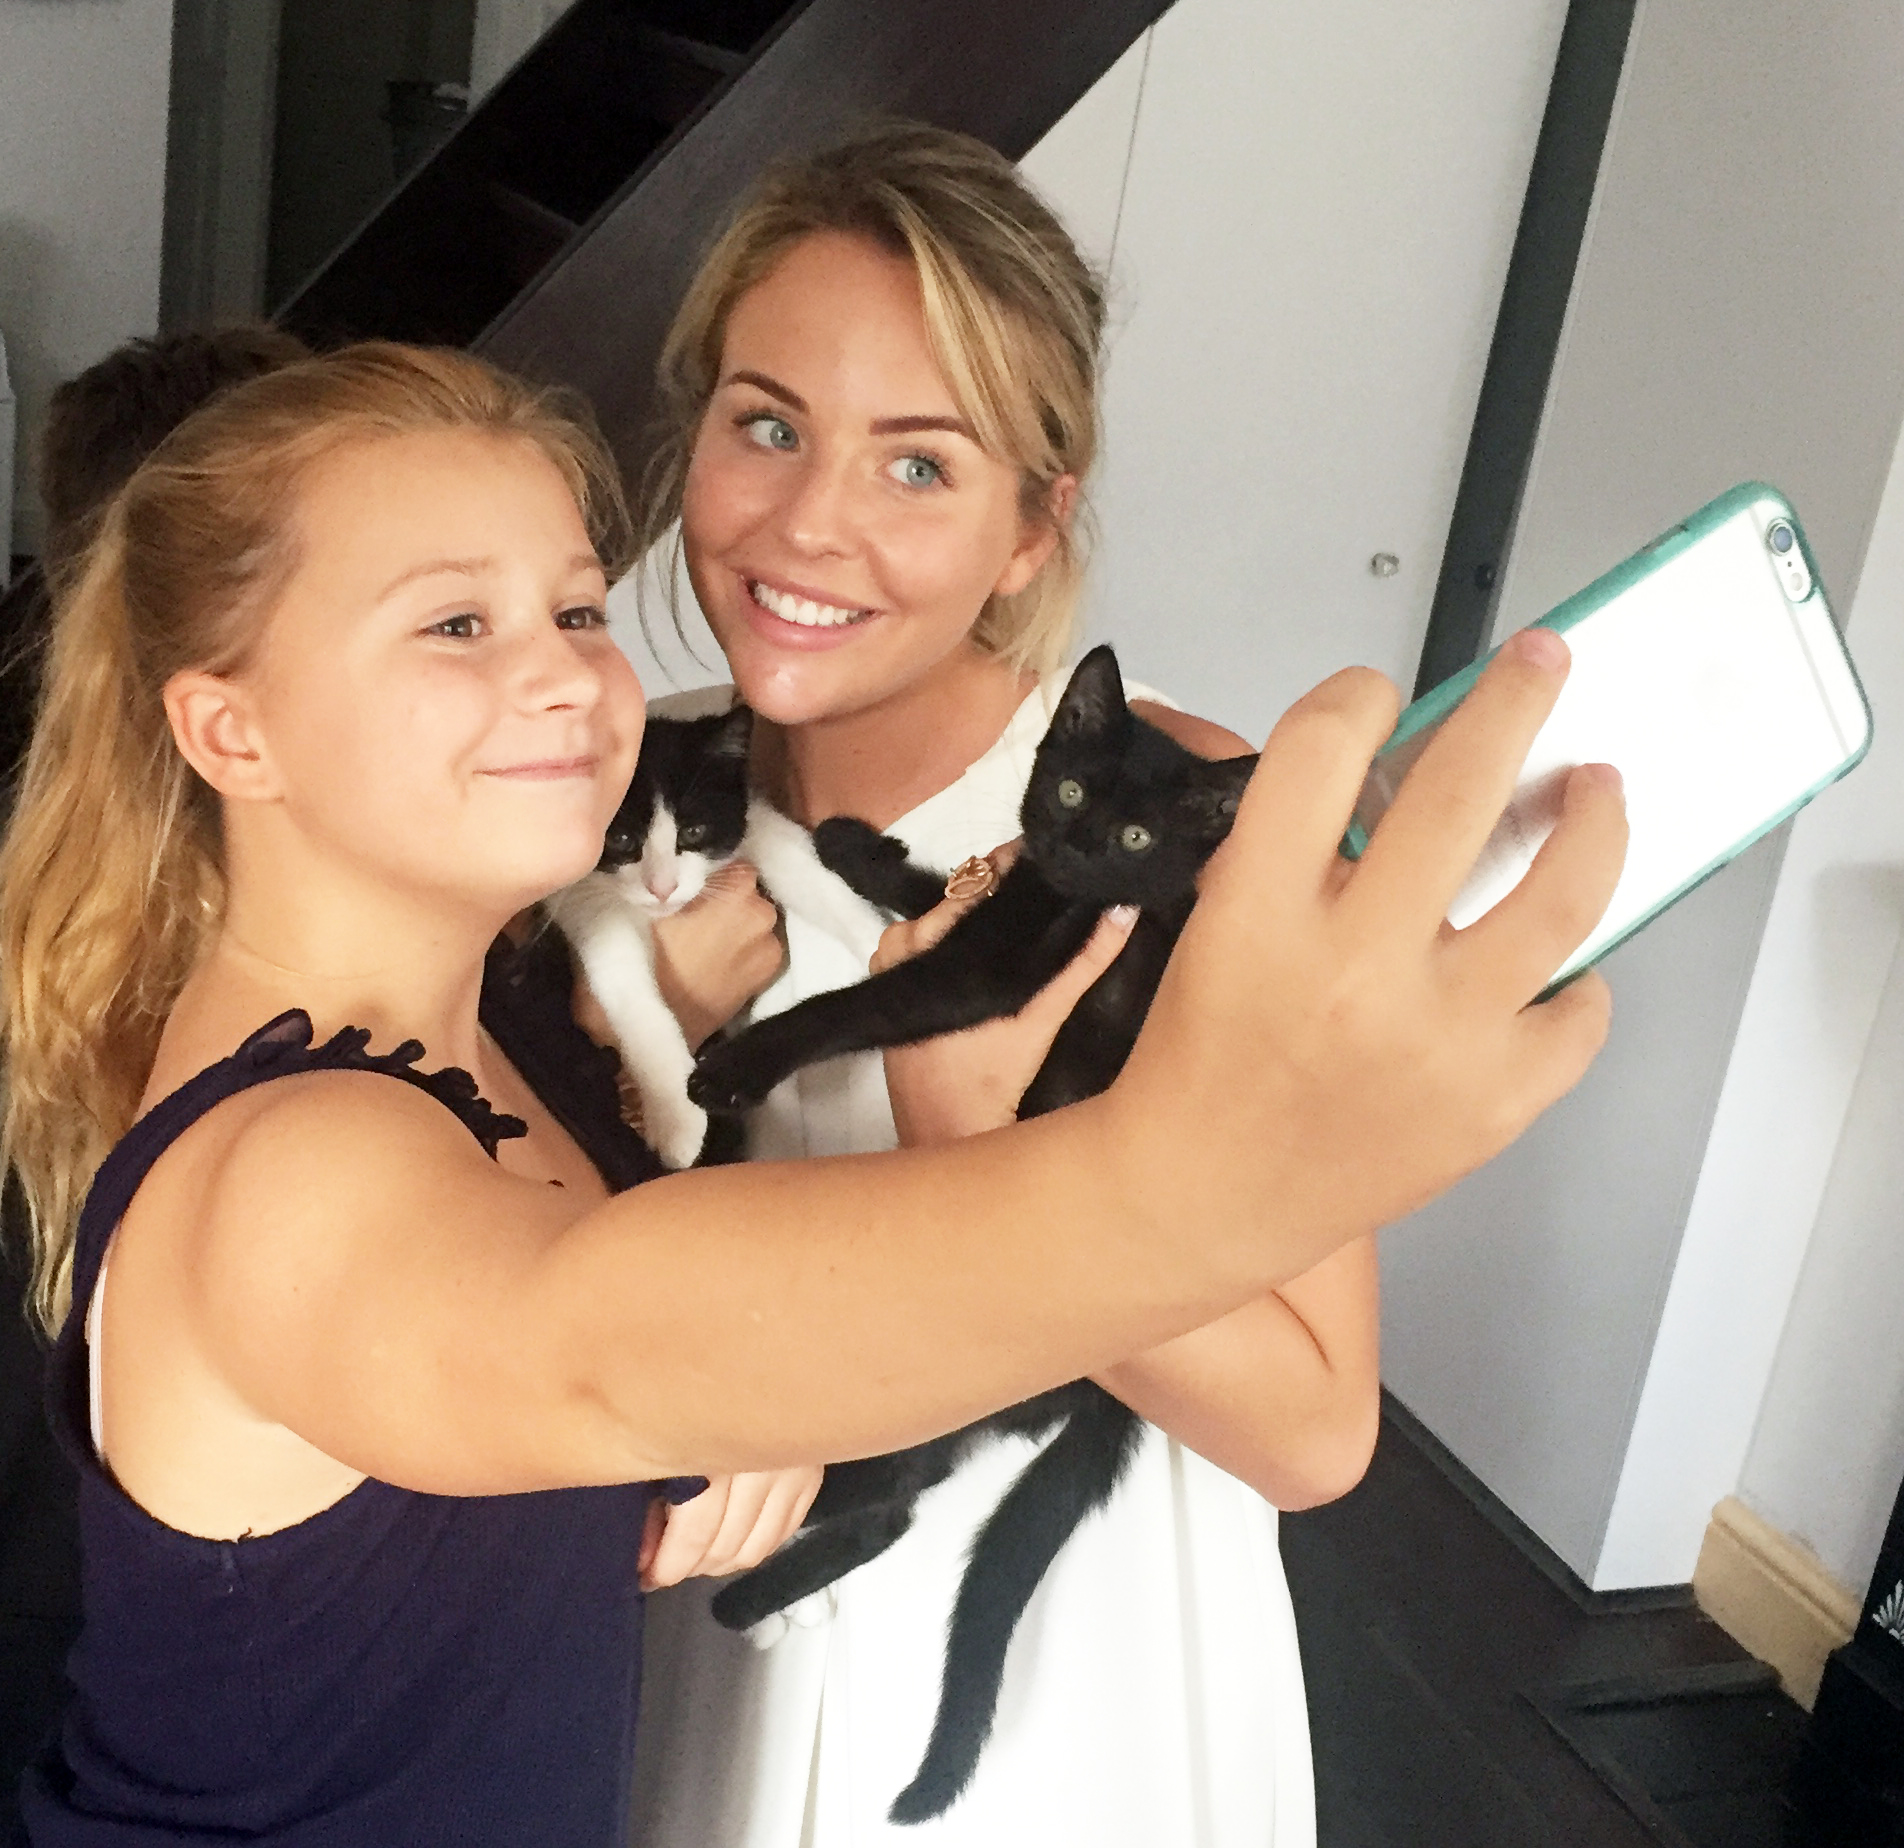 Amelie Sutton & Lydia Bright | Selfie moment with the kittens before they scampered away :)